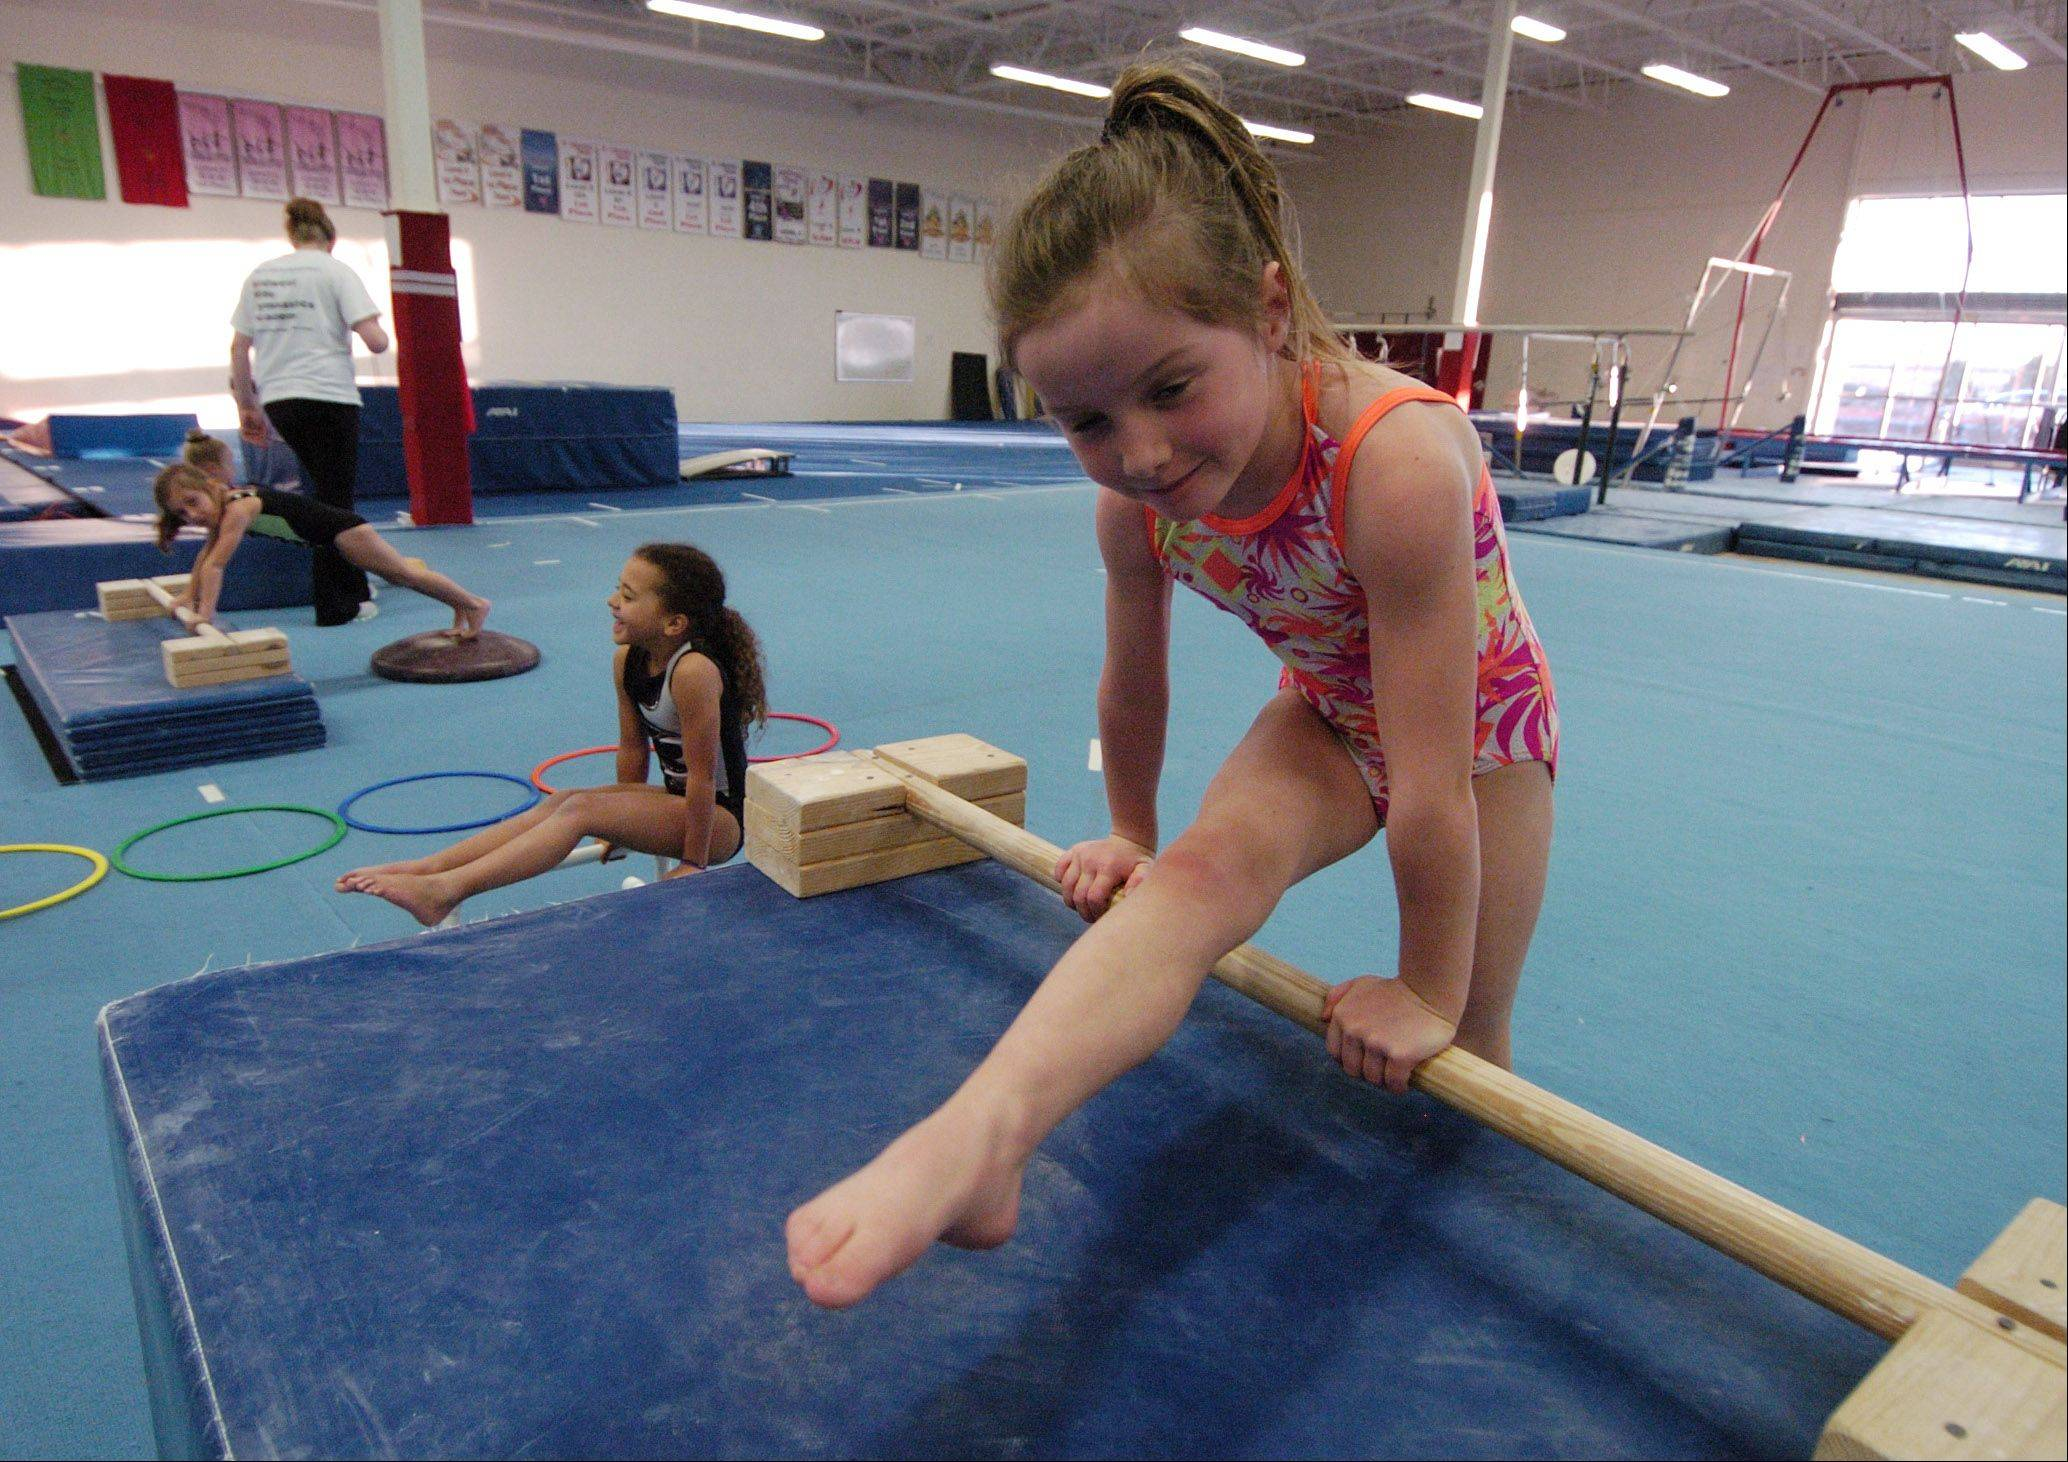 Sophia Goluba, 6, of Schaumburg practices at Midwest Elite Gymnastics Academy in South Barrington. The academy will be moving to Elgin in January.